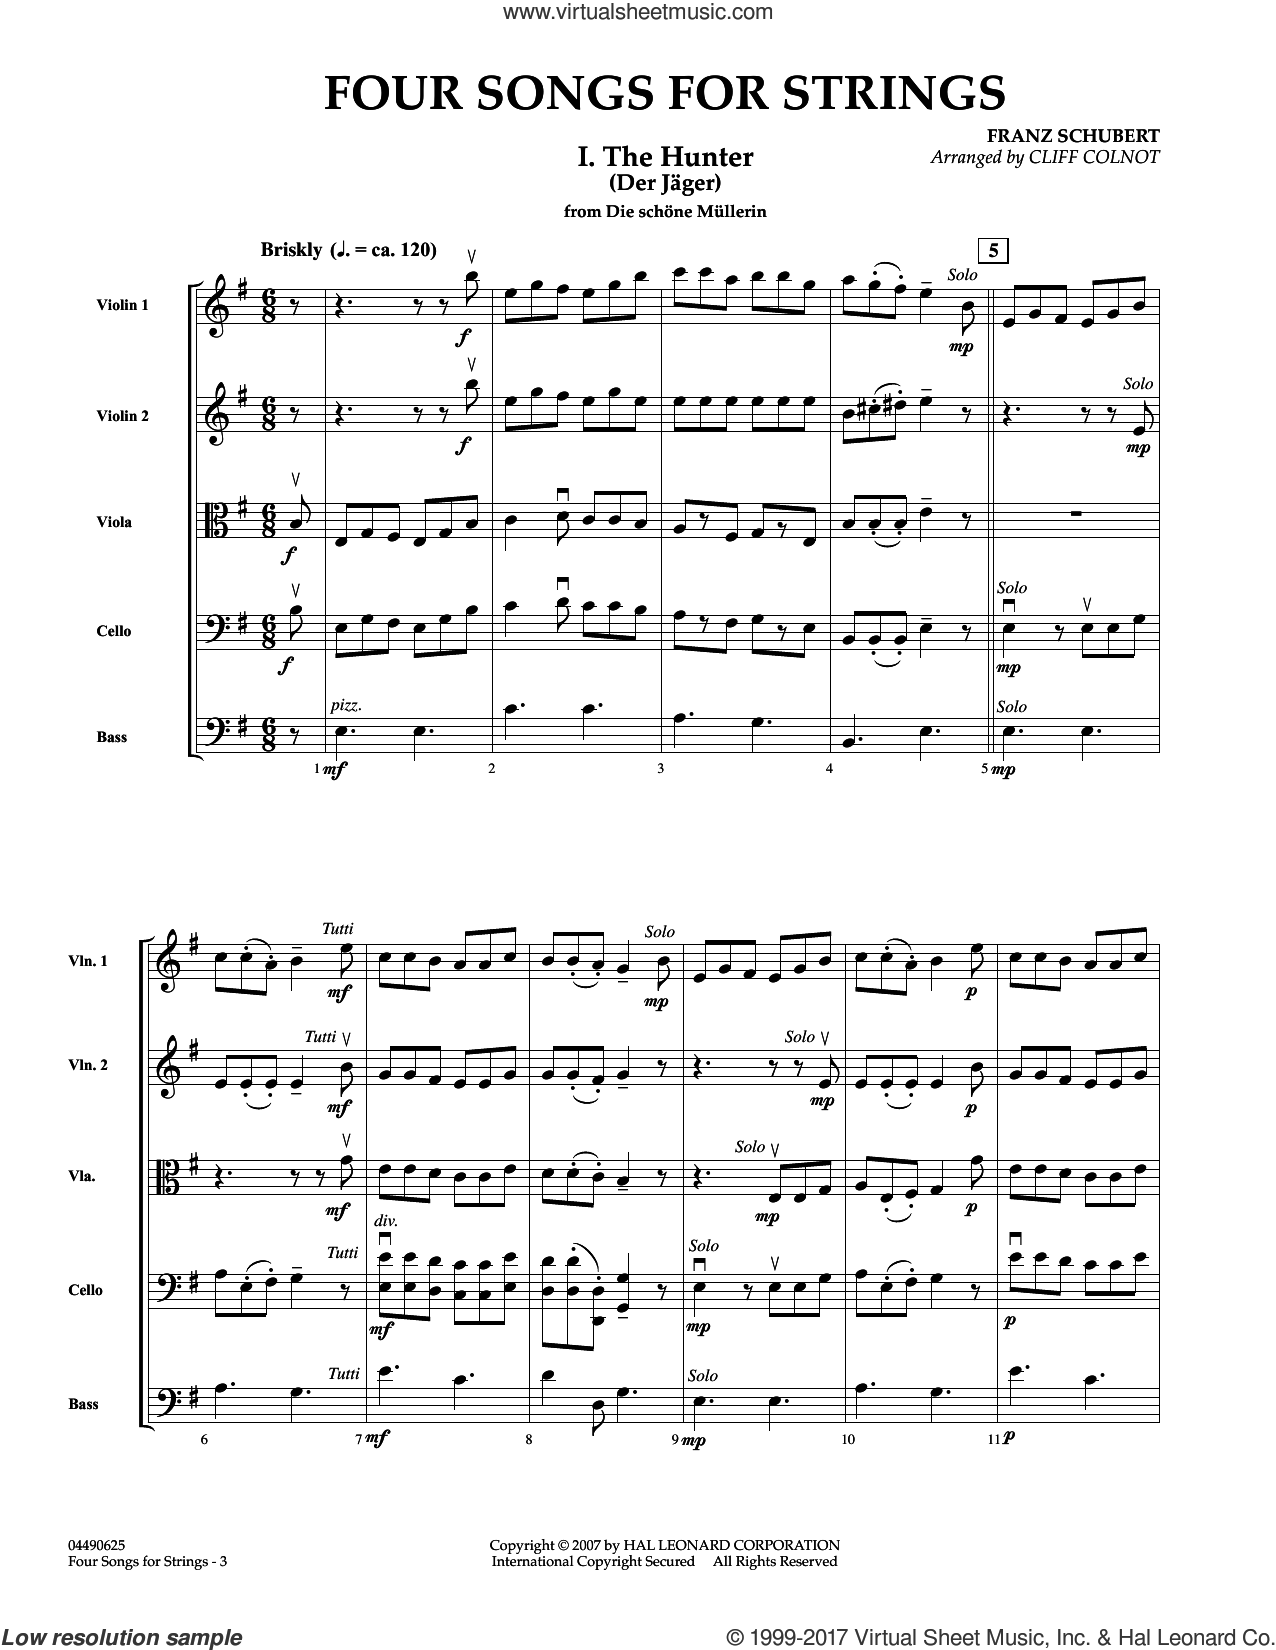 Four Songs for Strings (COMPLETE) sheet music for orchestra by Franz Schubert and Cliff Colnot, classical score, intermediate skill level